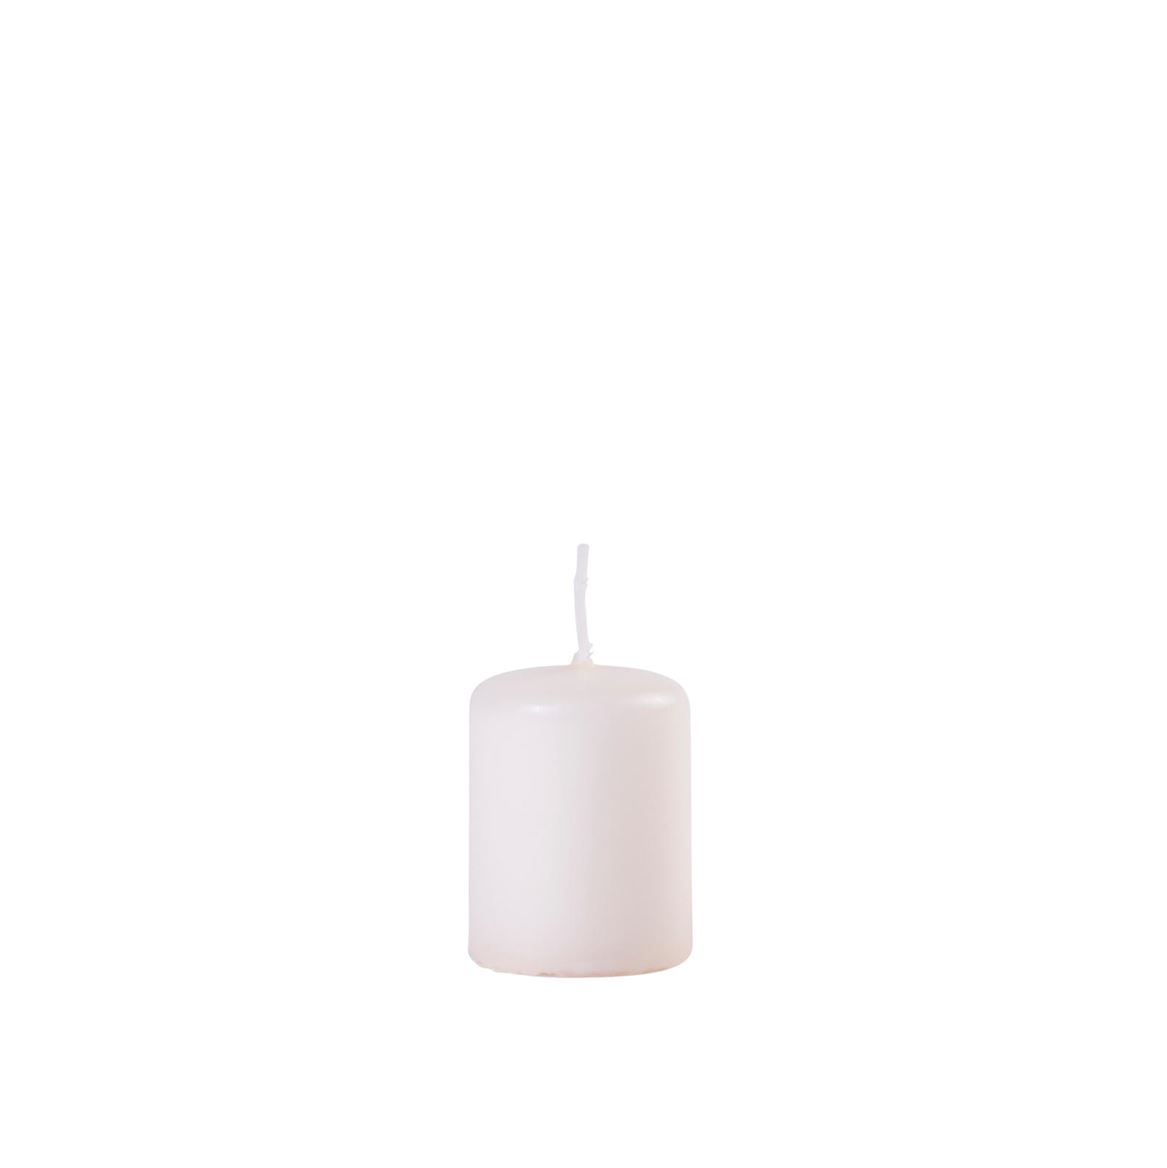 CILINDRO Candela beige H 5 cm; Ø 4 cm_cilindro-candela-beige-h-5-cm;-ø-4-cm